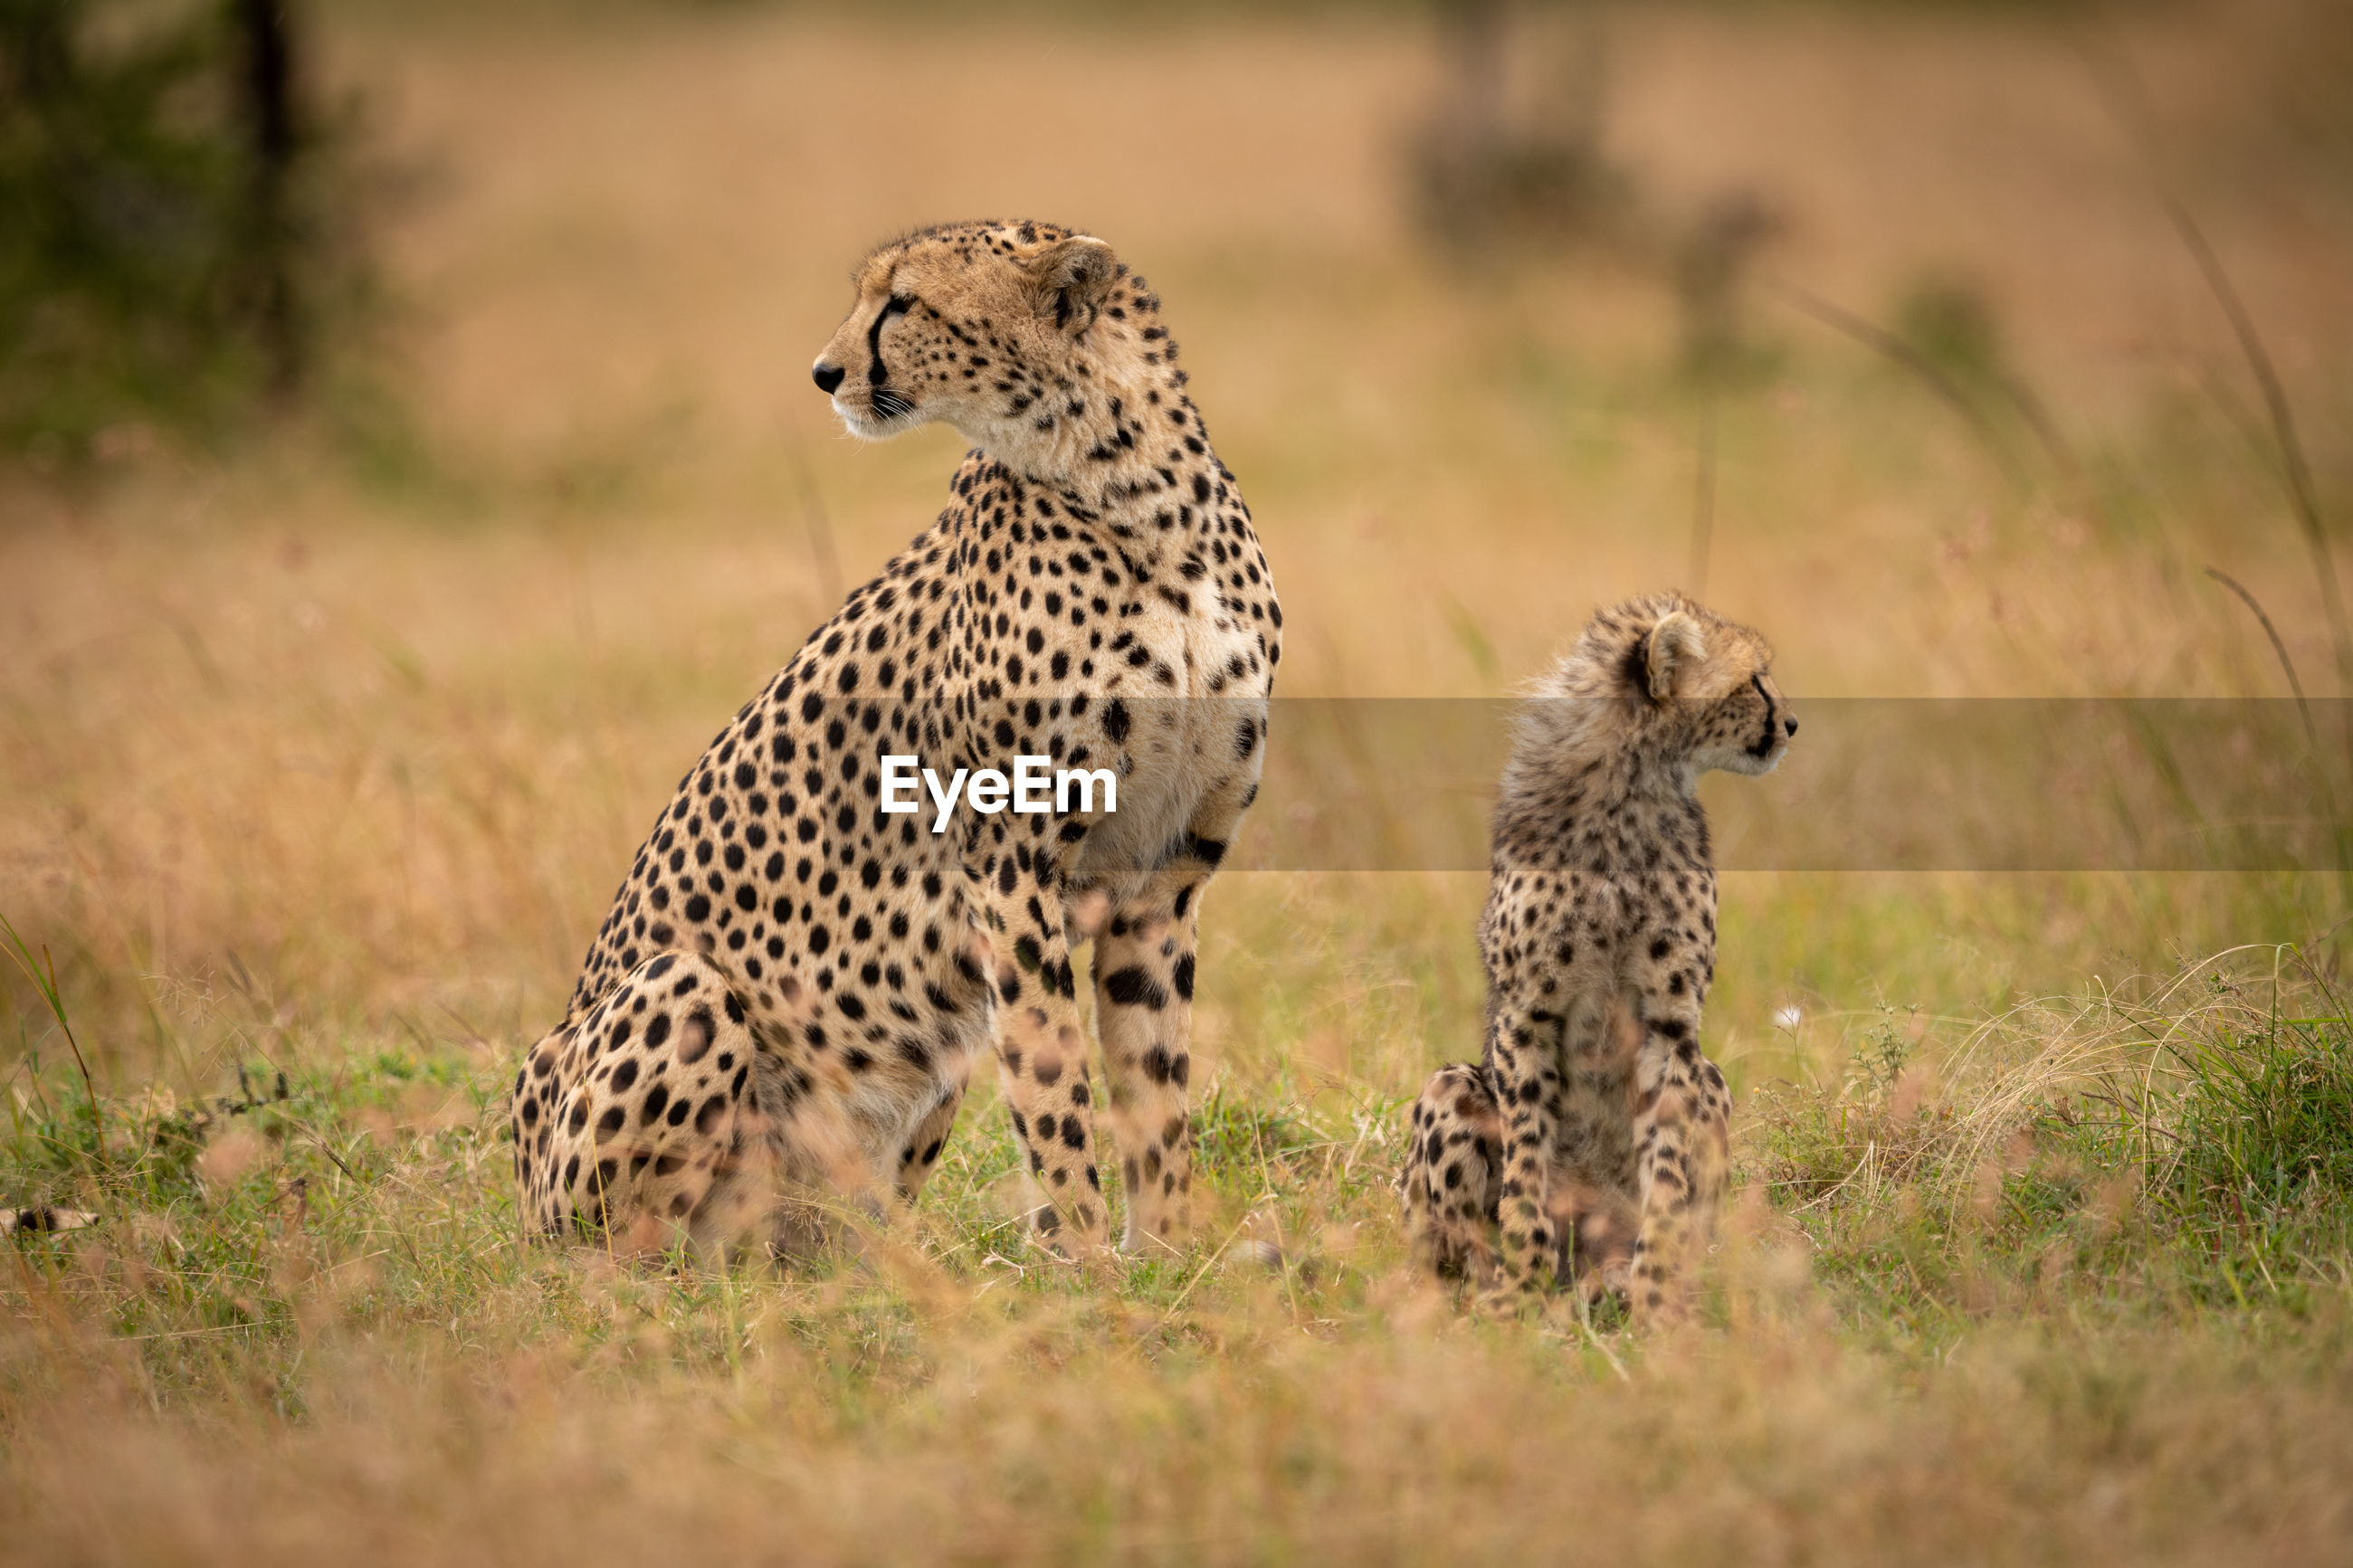 Cheetahs sitting on grassy field in forest